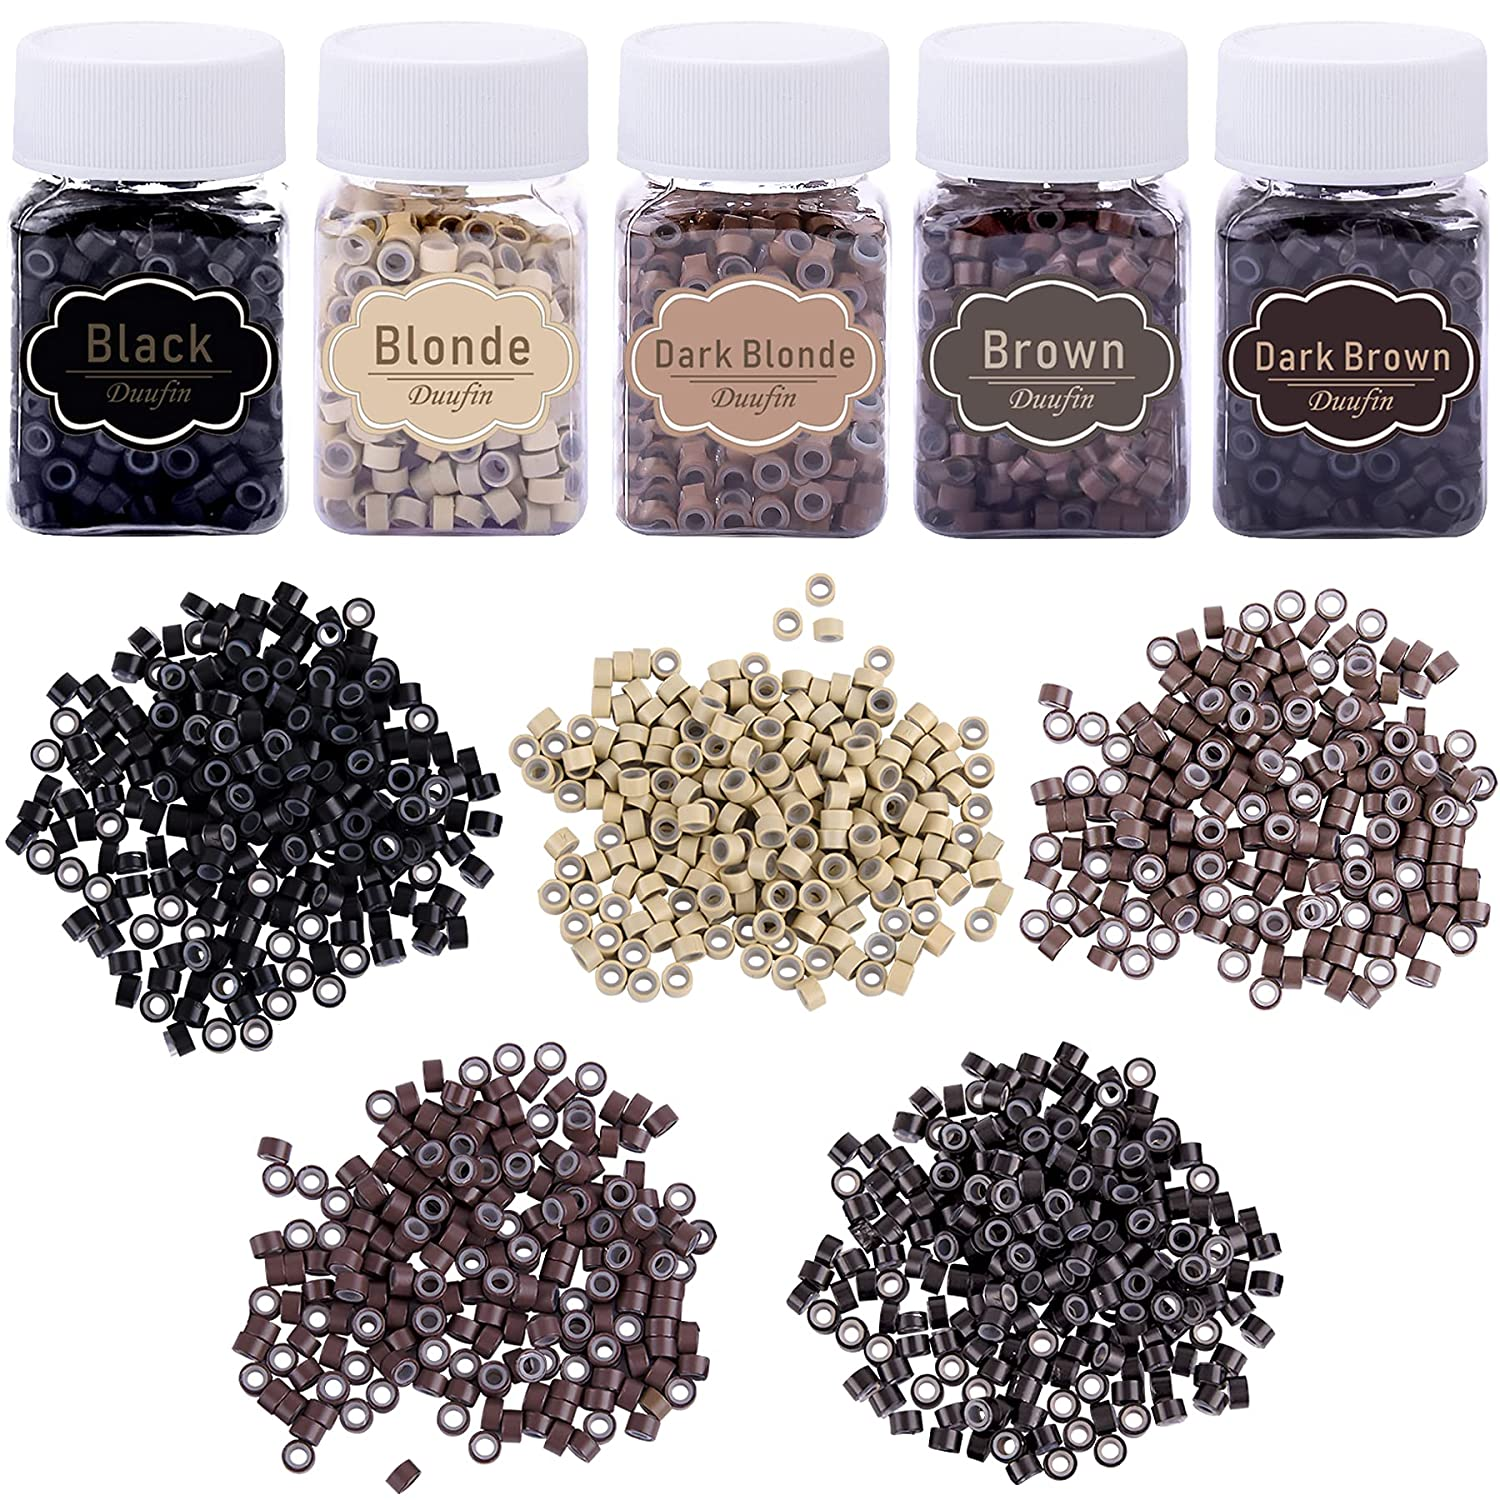 Duufin 2500 Max 45% OFF Pieces Micro Links Hair 5.0mm Rings Extentions Beads Ranking TOP14